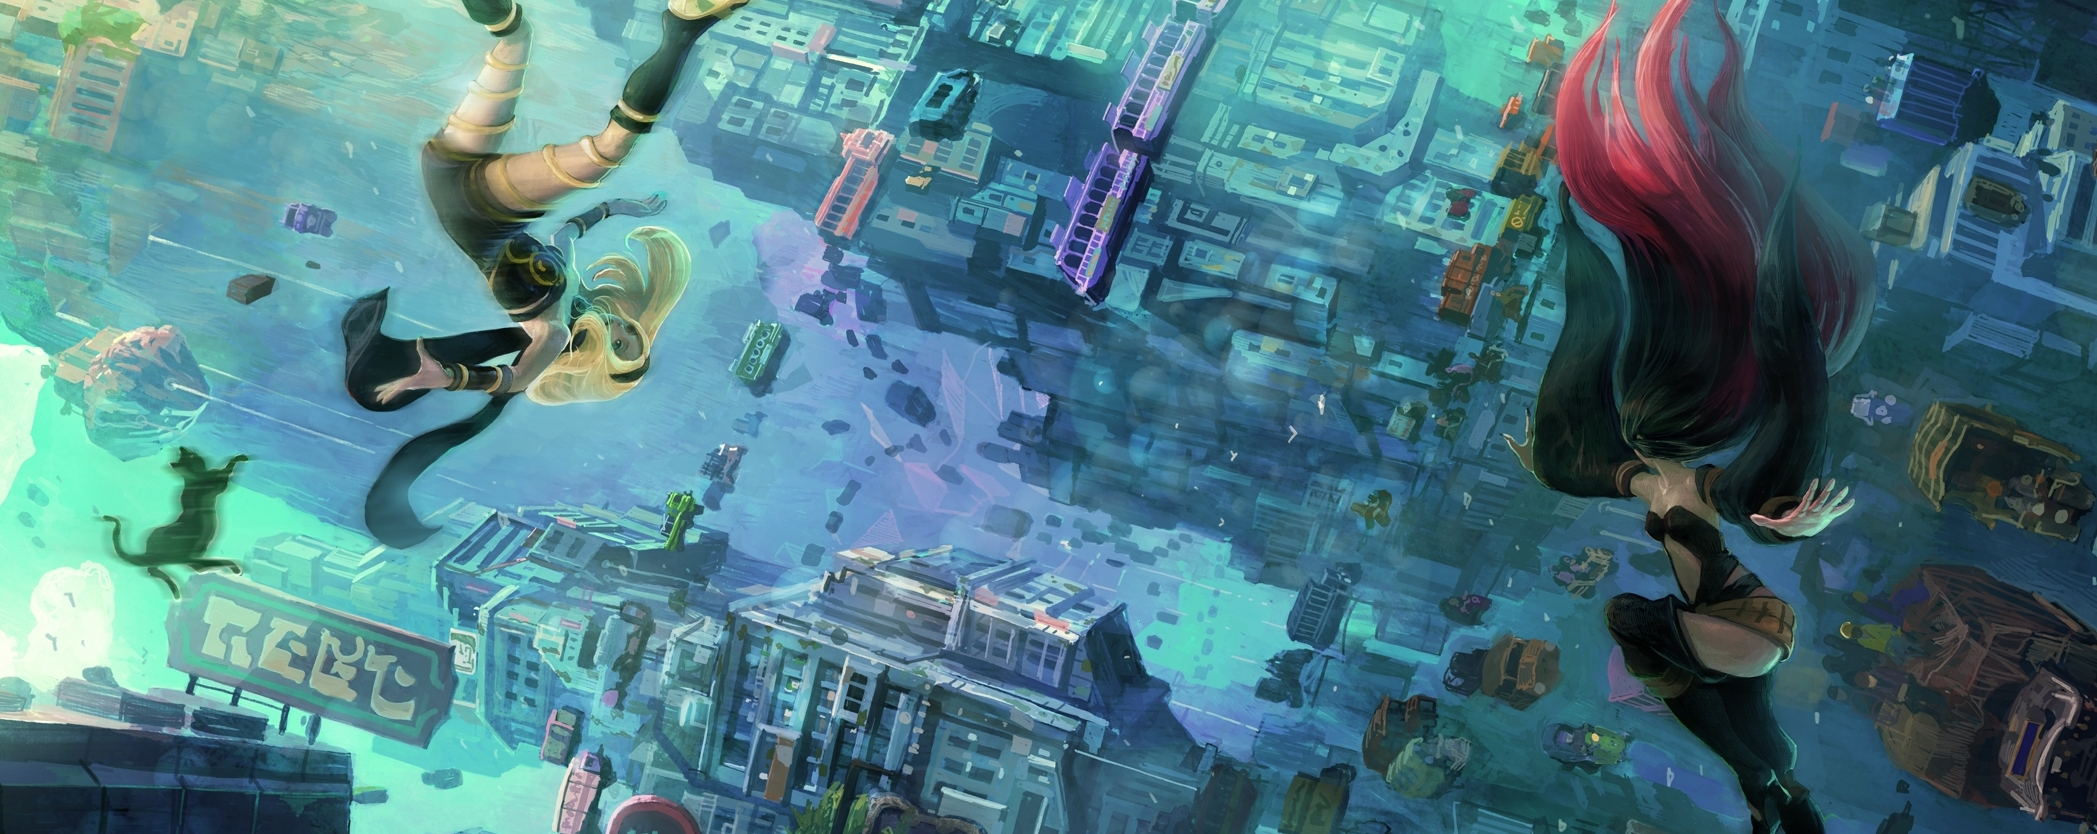 High Resolution Wallpaper | Gravity Rush 2 2097x834 px